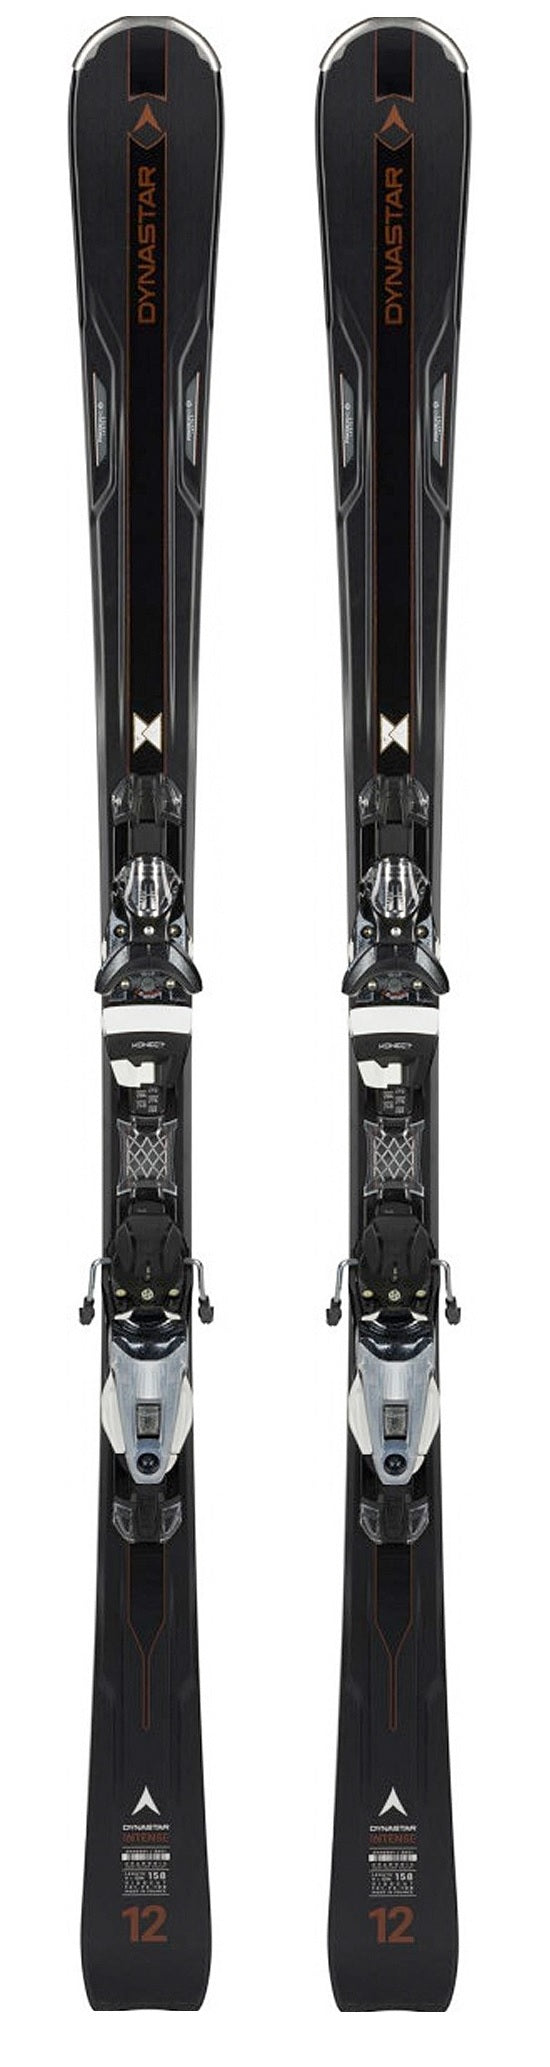 2019 Dynastar Intense 12 ladies snow skis (CLEARANCE) - ProSkiGuy your Hometown Ski Shop on the web